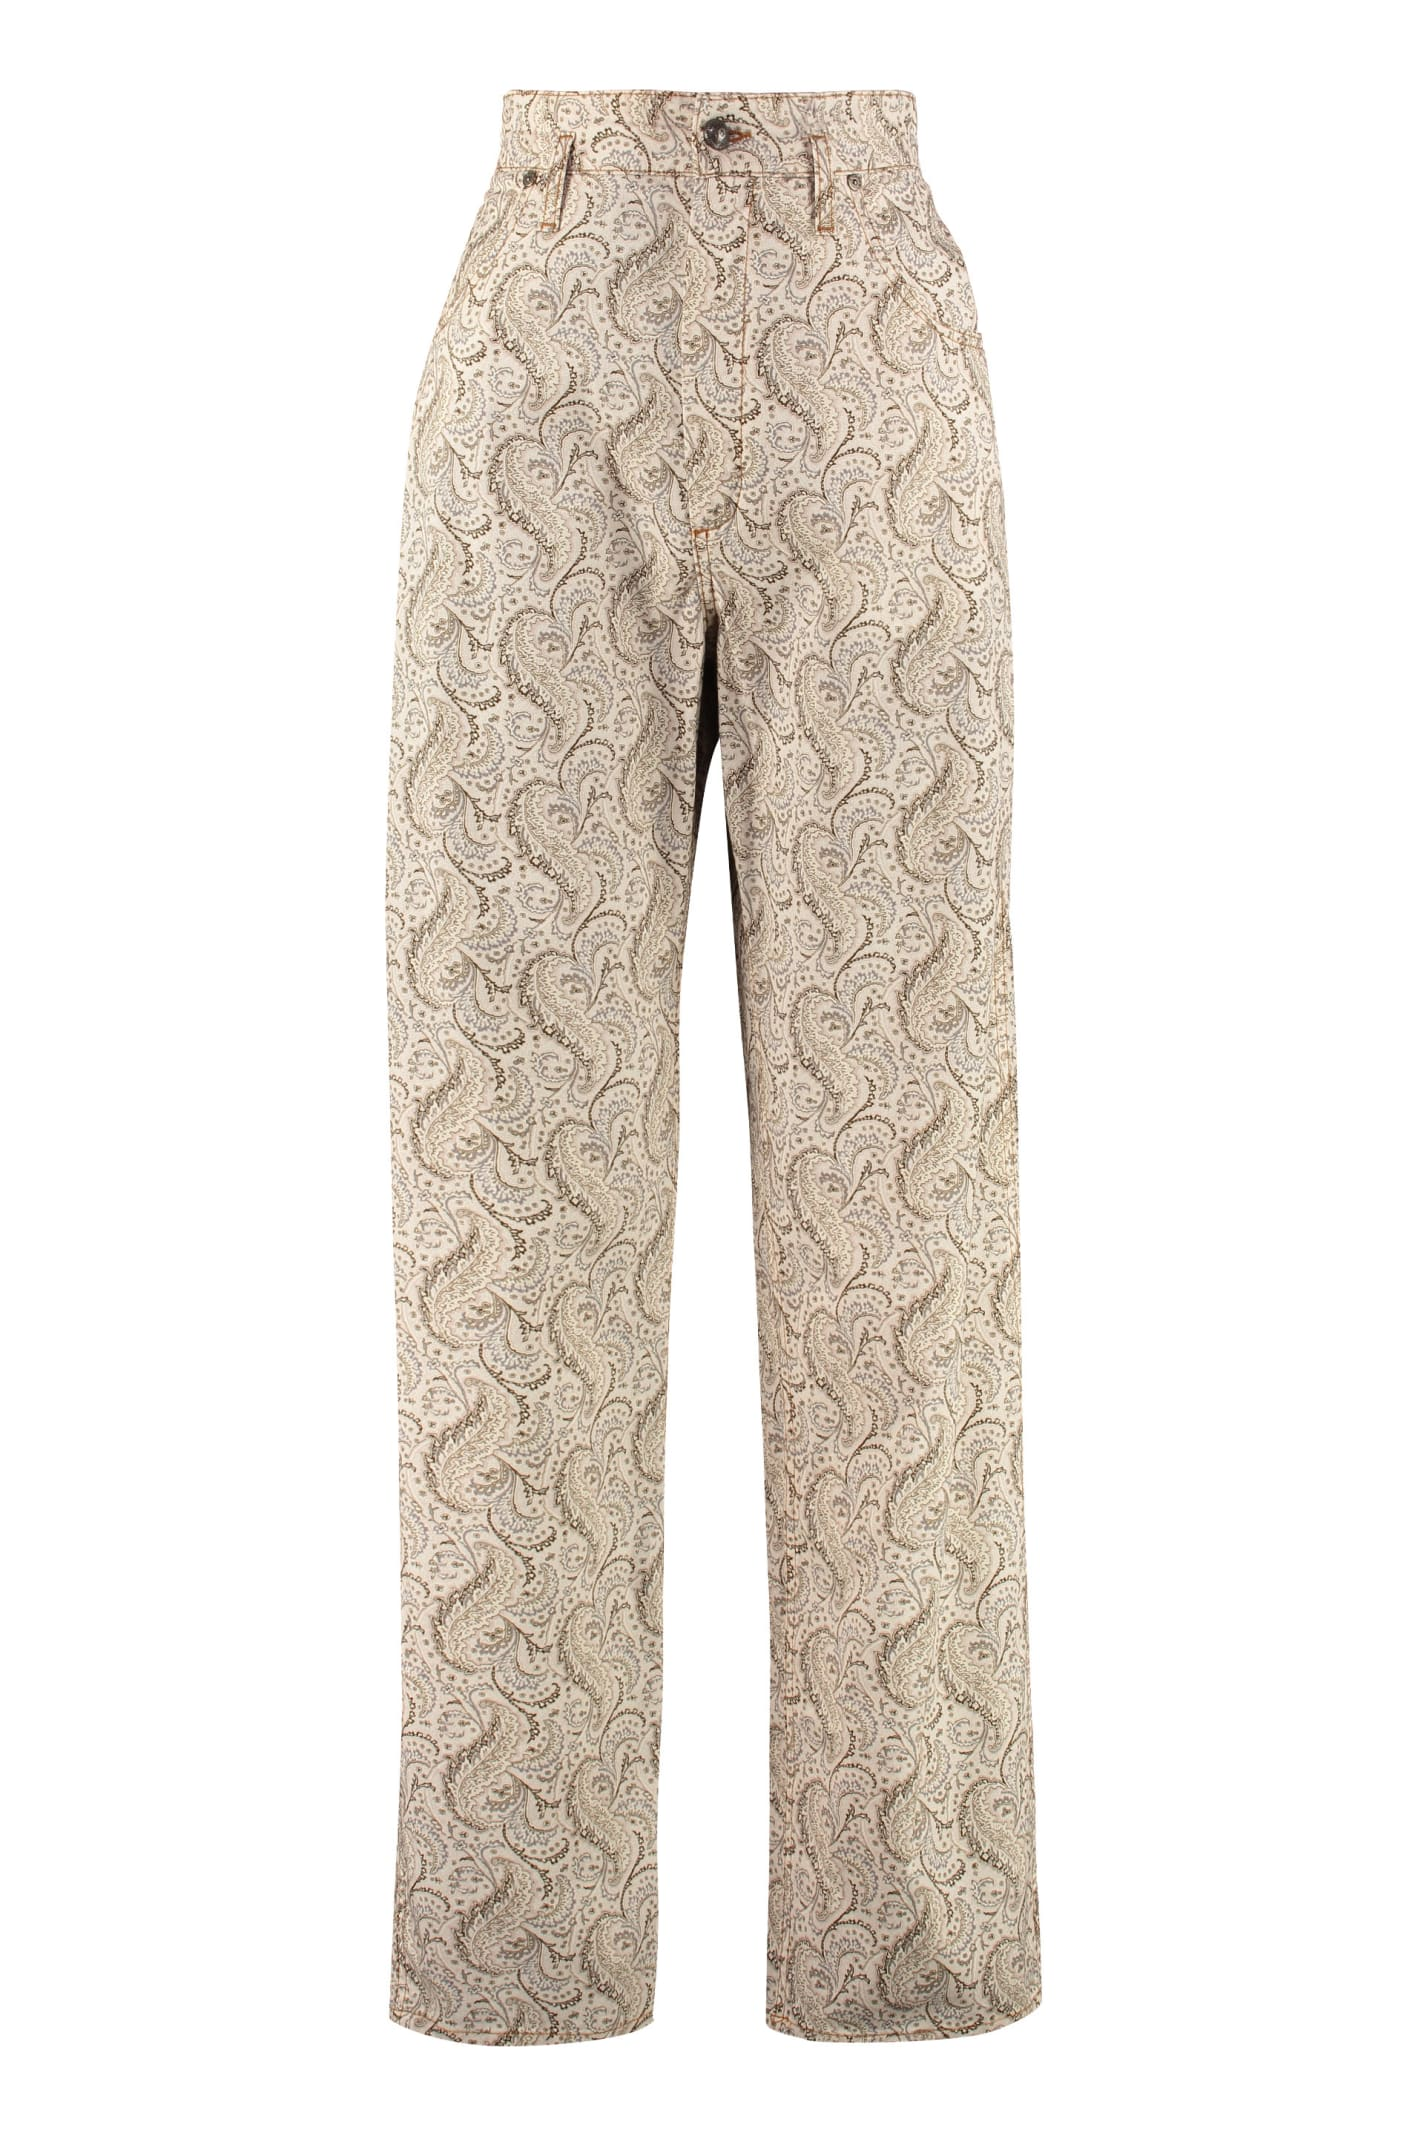 Etro High-rise Cotton Trousers